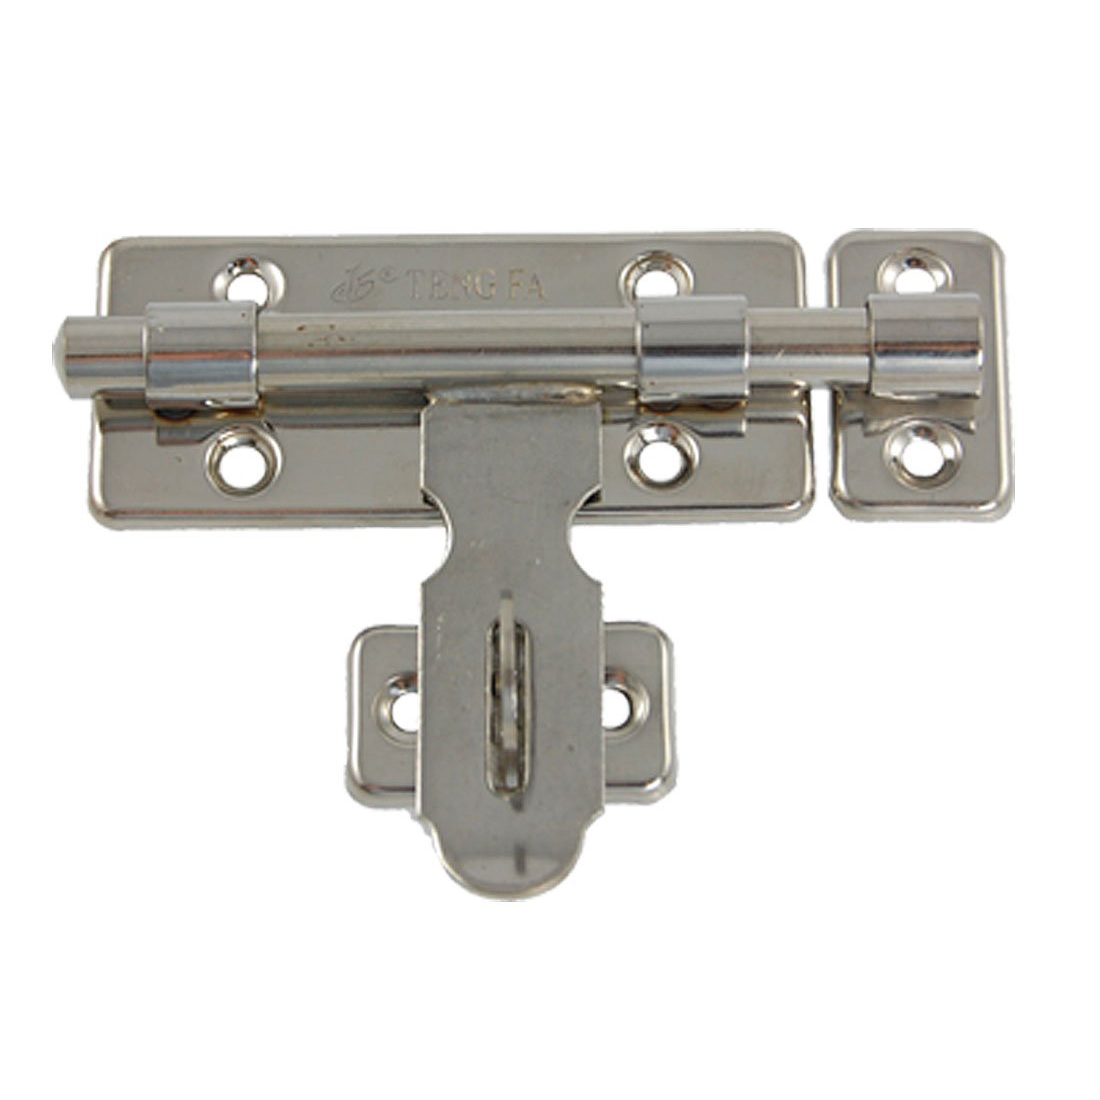 Compare prices on door latch hardware online shoppingbuy low hhtl tengfa hardware door lock barrel bolt latch padlock clasp setchina vtopaller Image collections